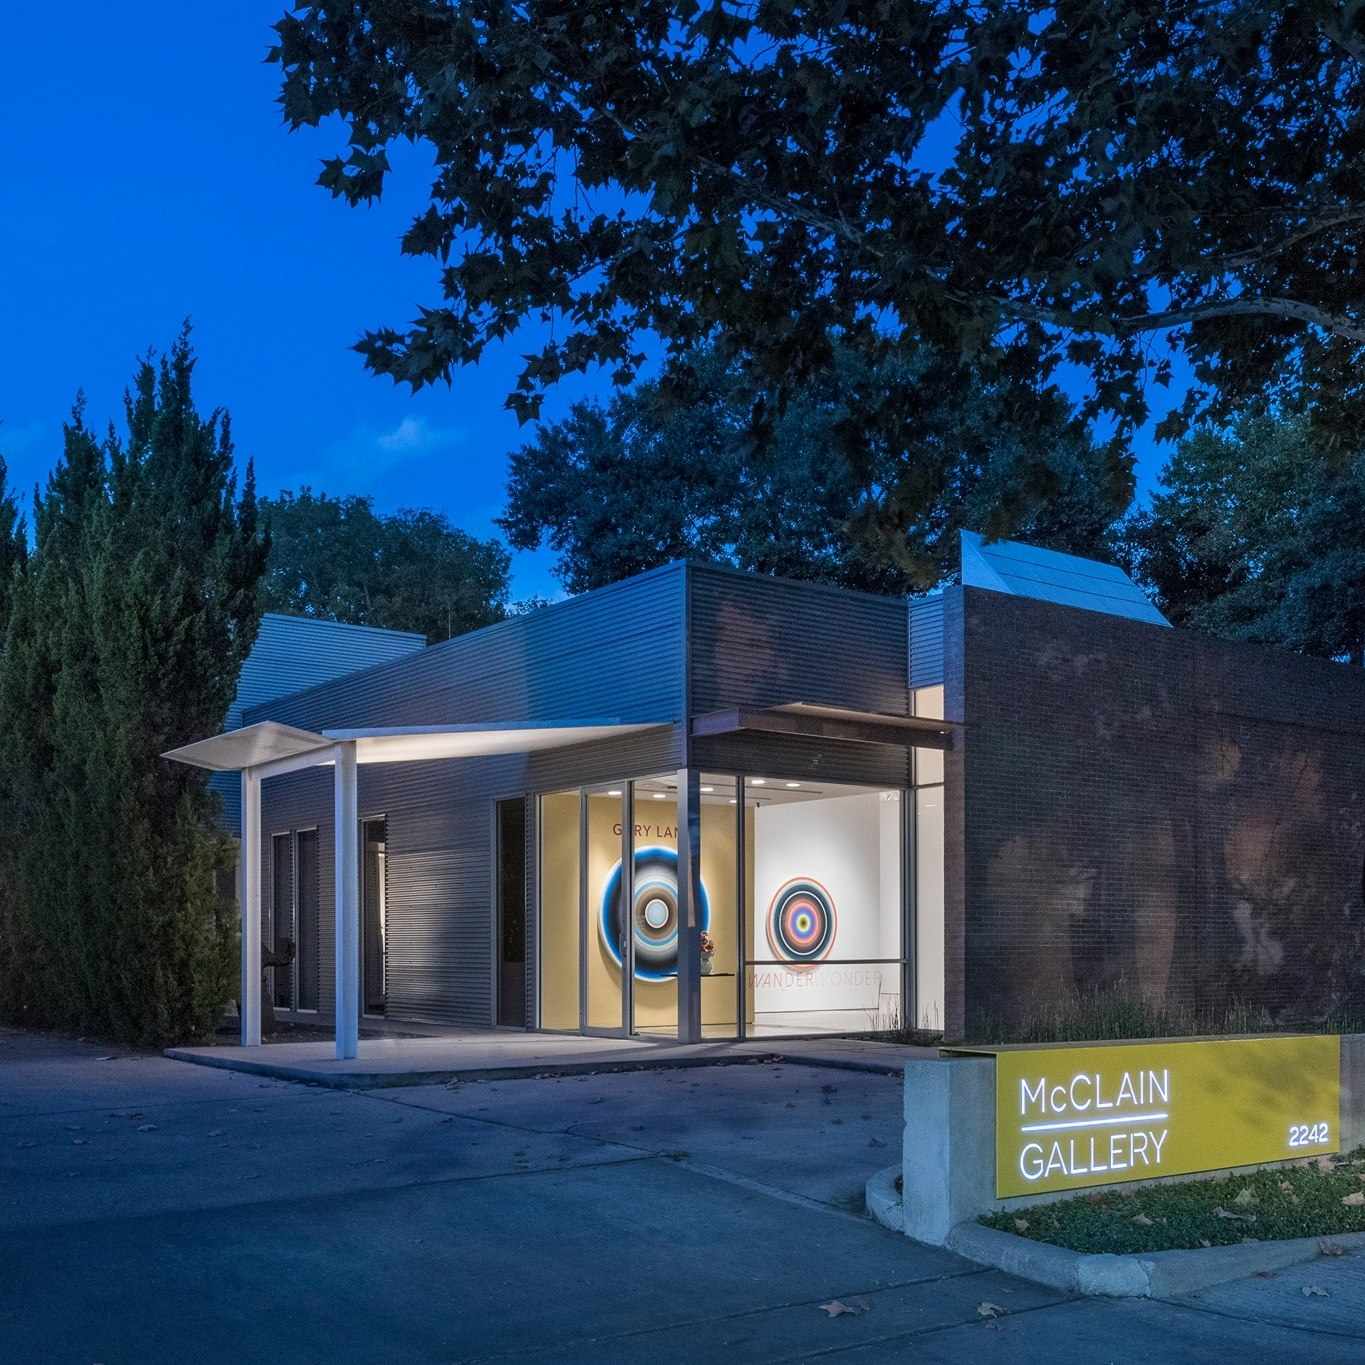 Amazing Tour of Contemporary Art Galleries of Houston-McClain Gallery